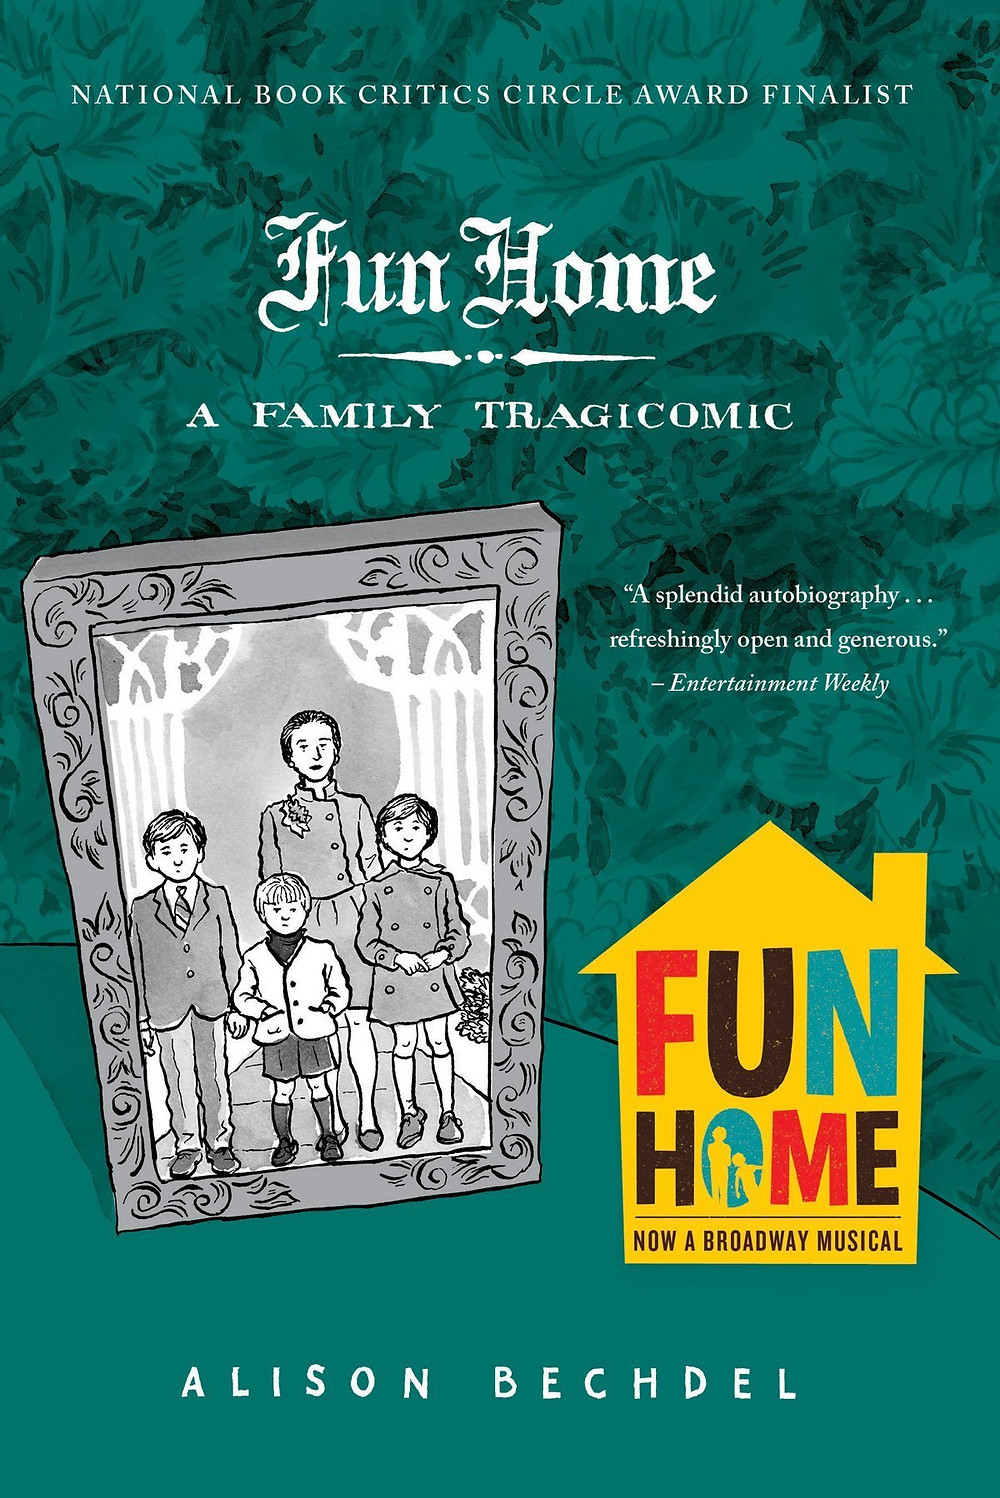 Book cover of Fun Home by Alison Bechdel.